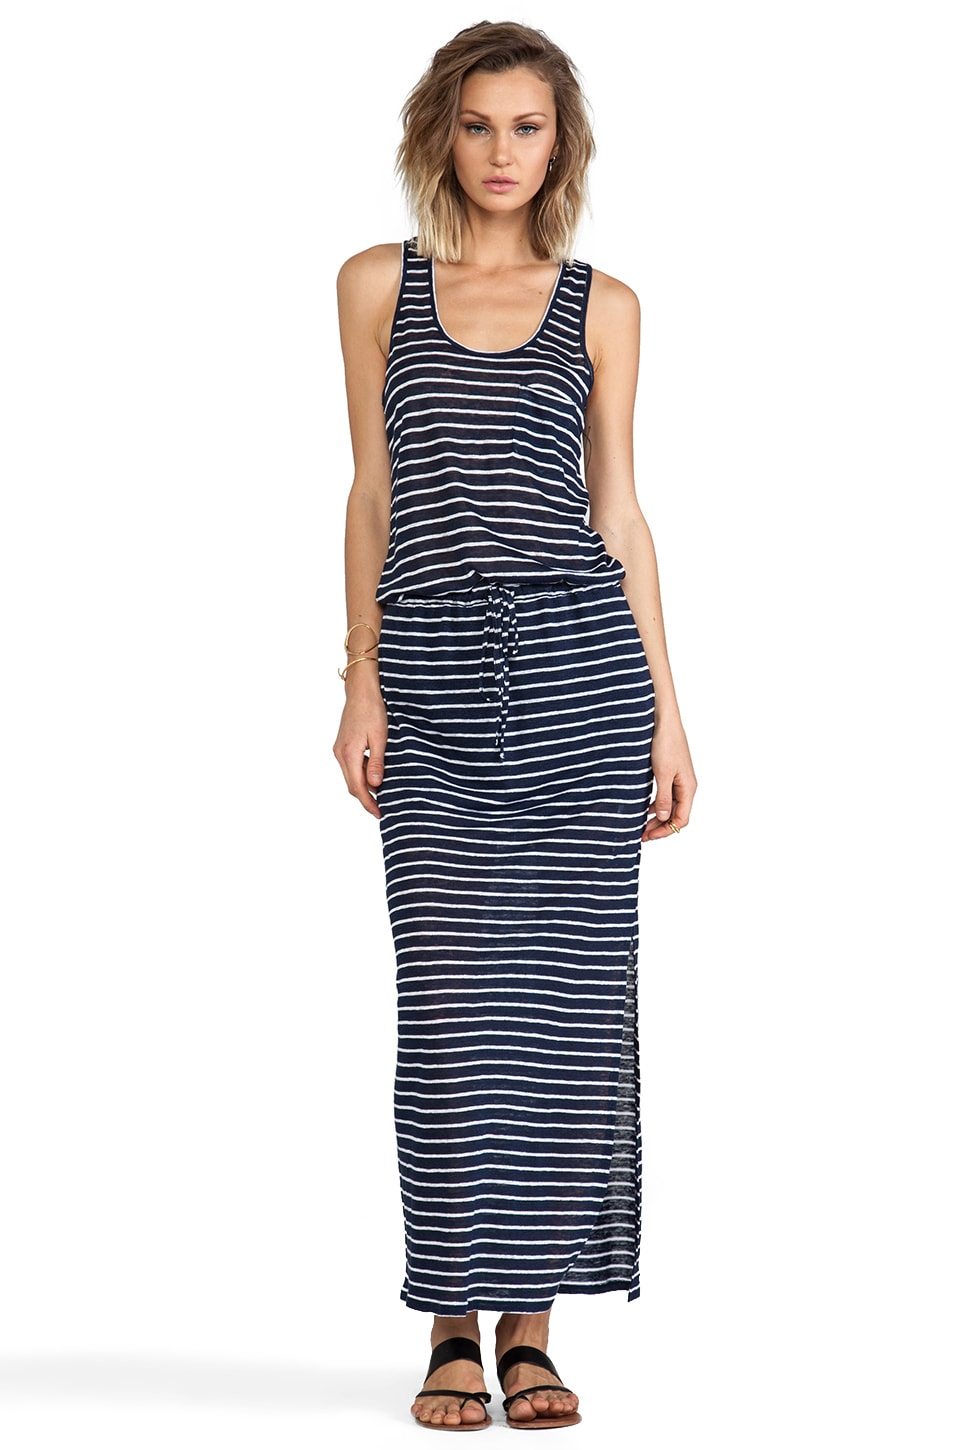 C&C California Racerback Maxi Dress in Navy